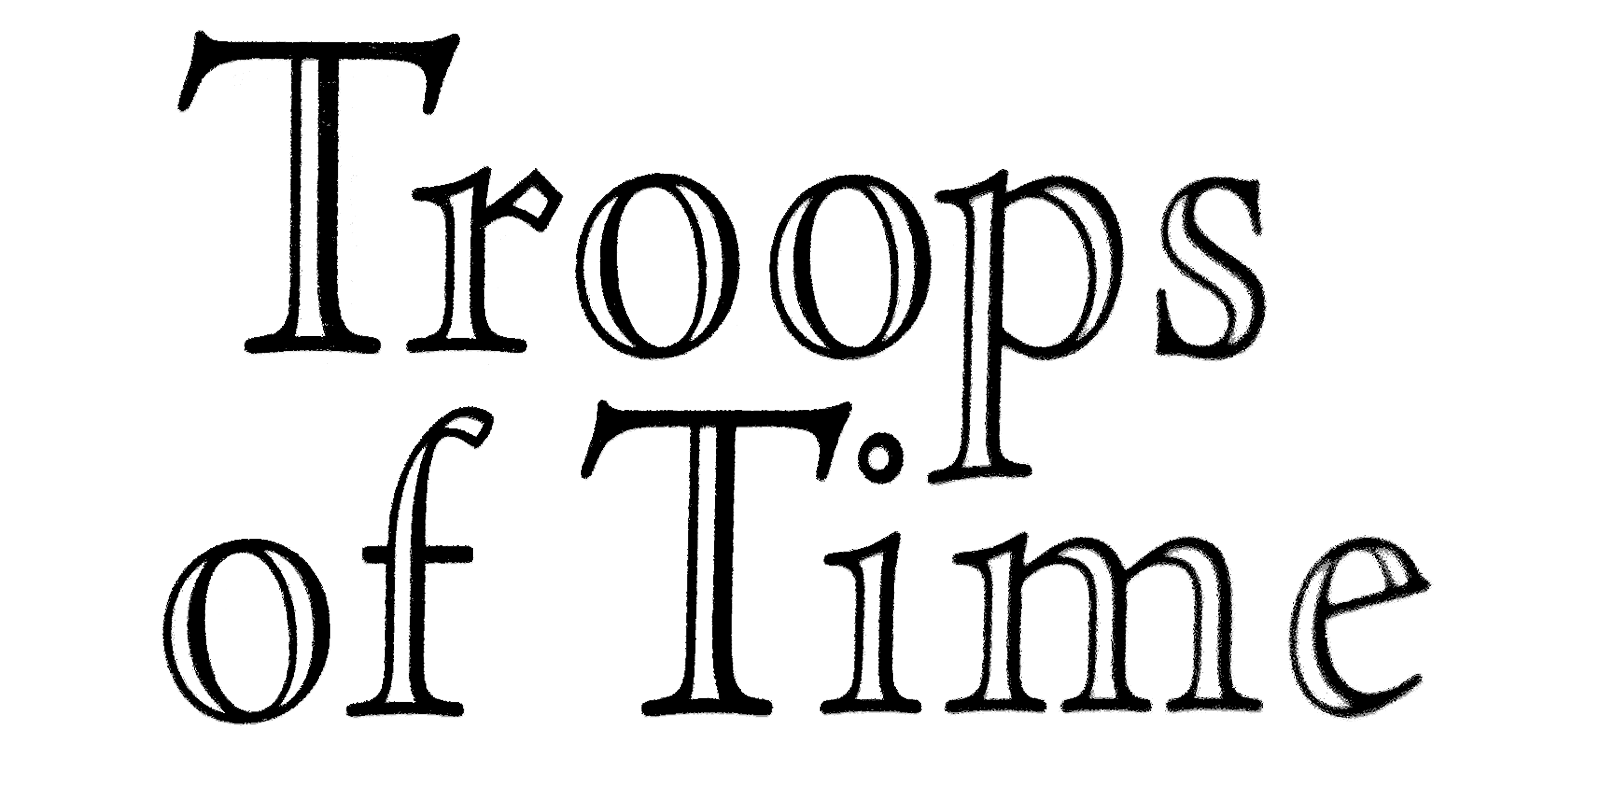 Troops of Time